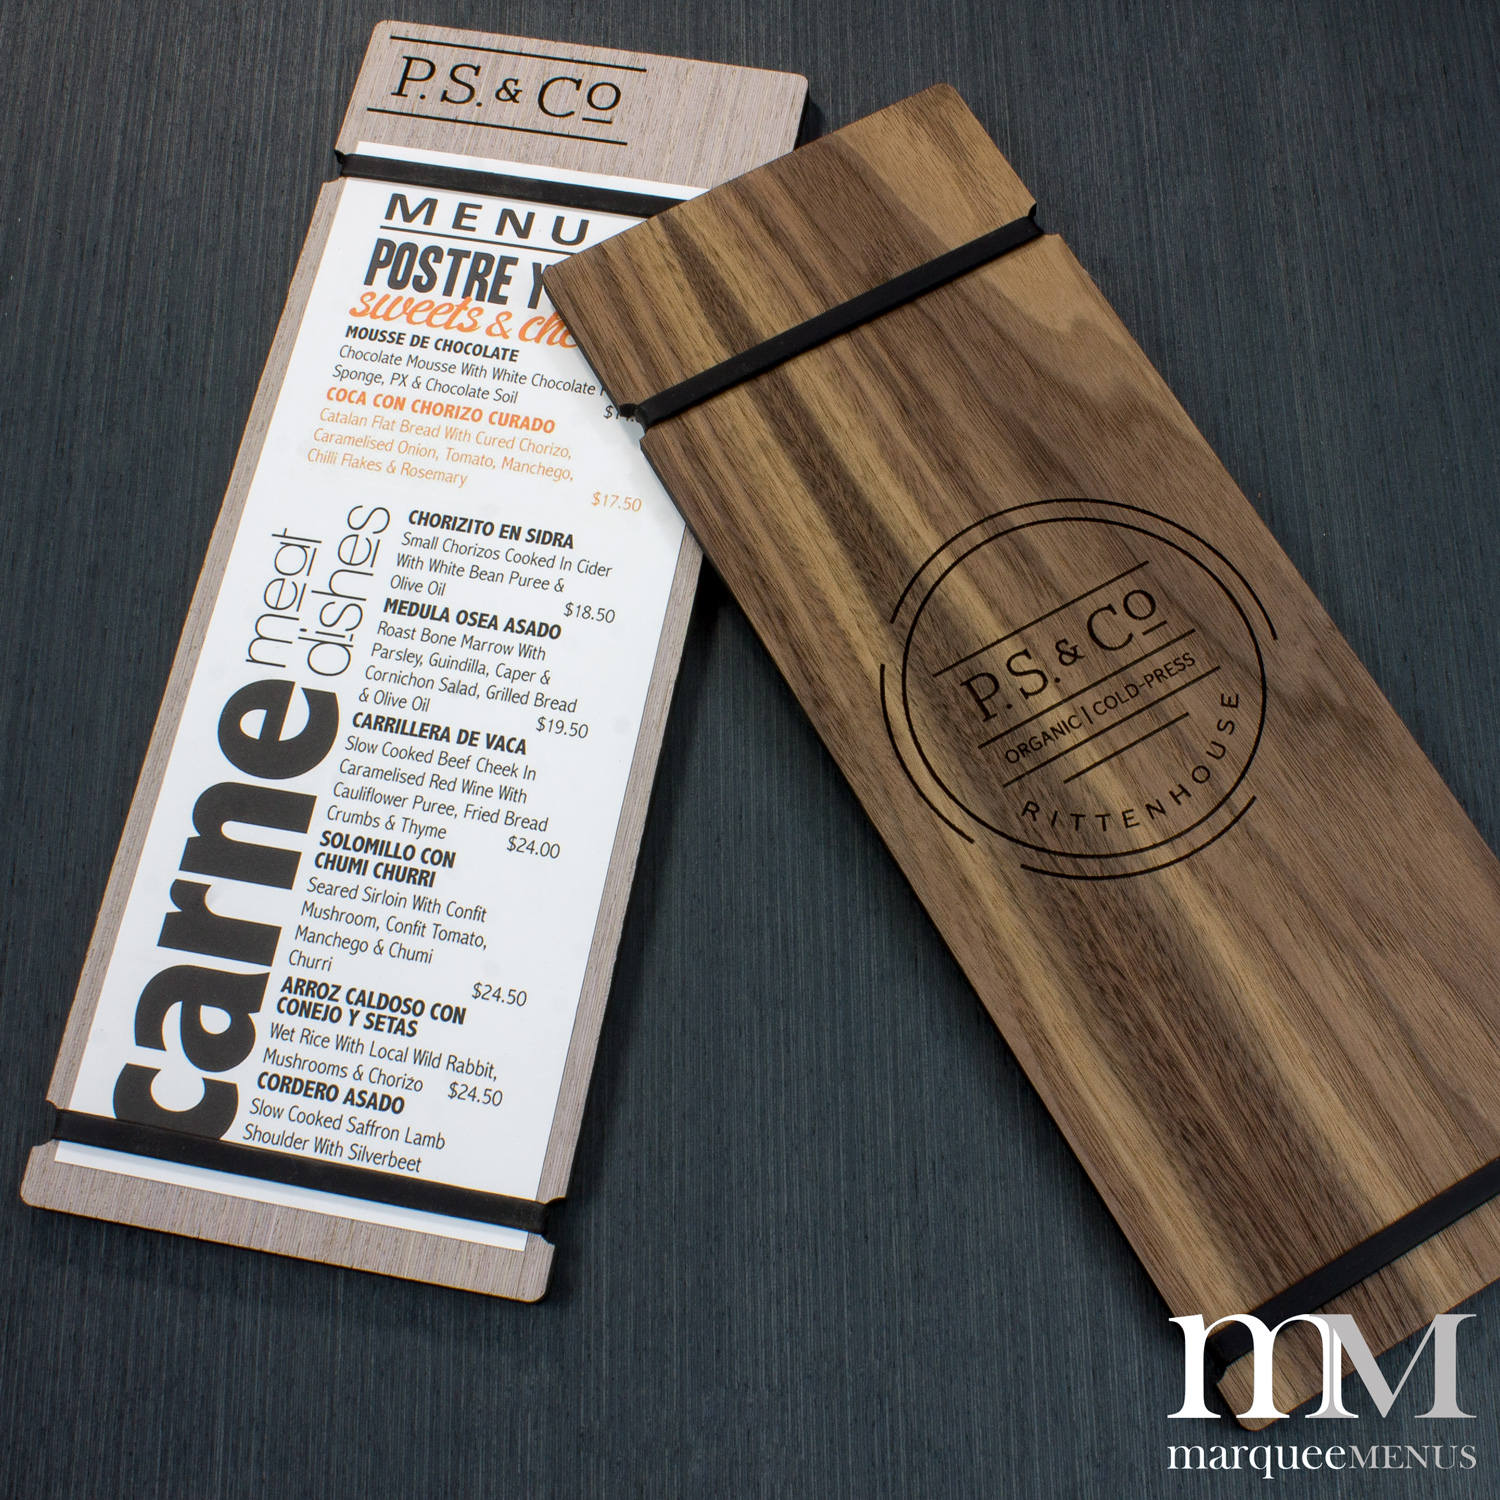 cool wooden birthday menu example2